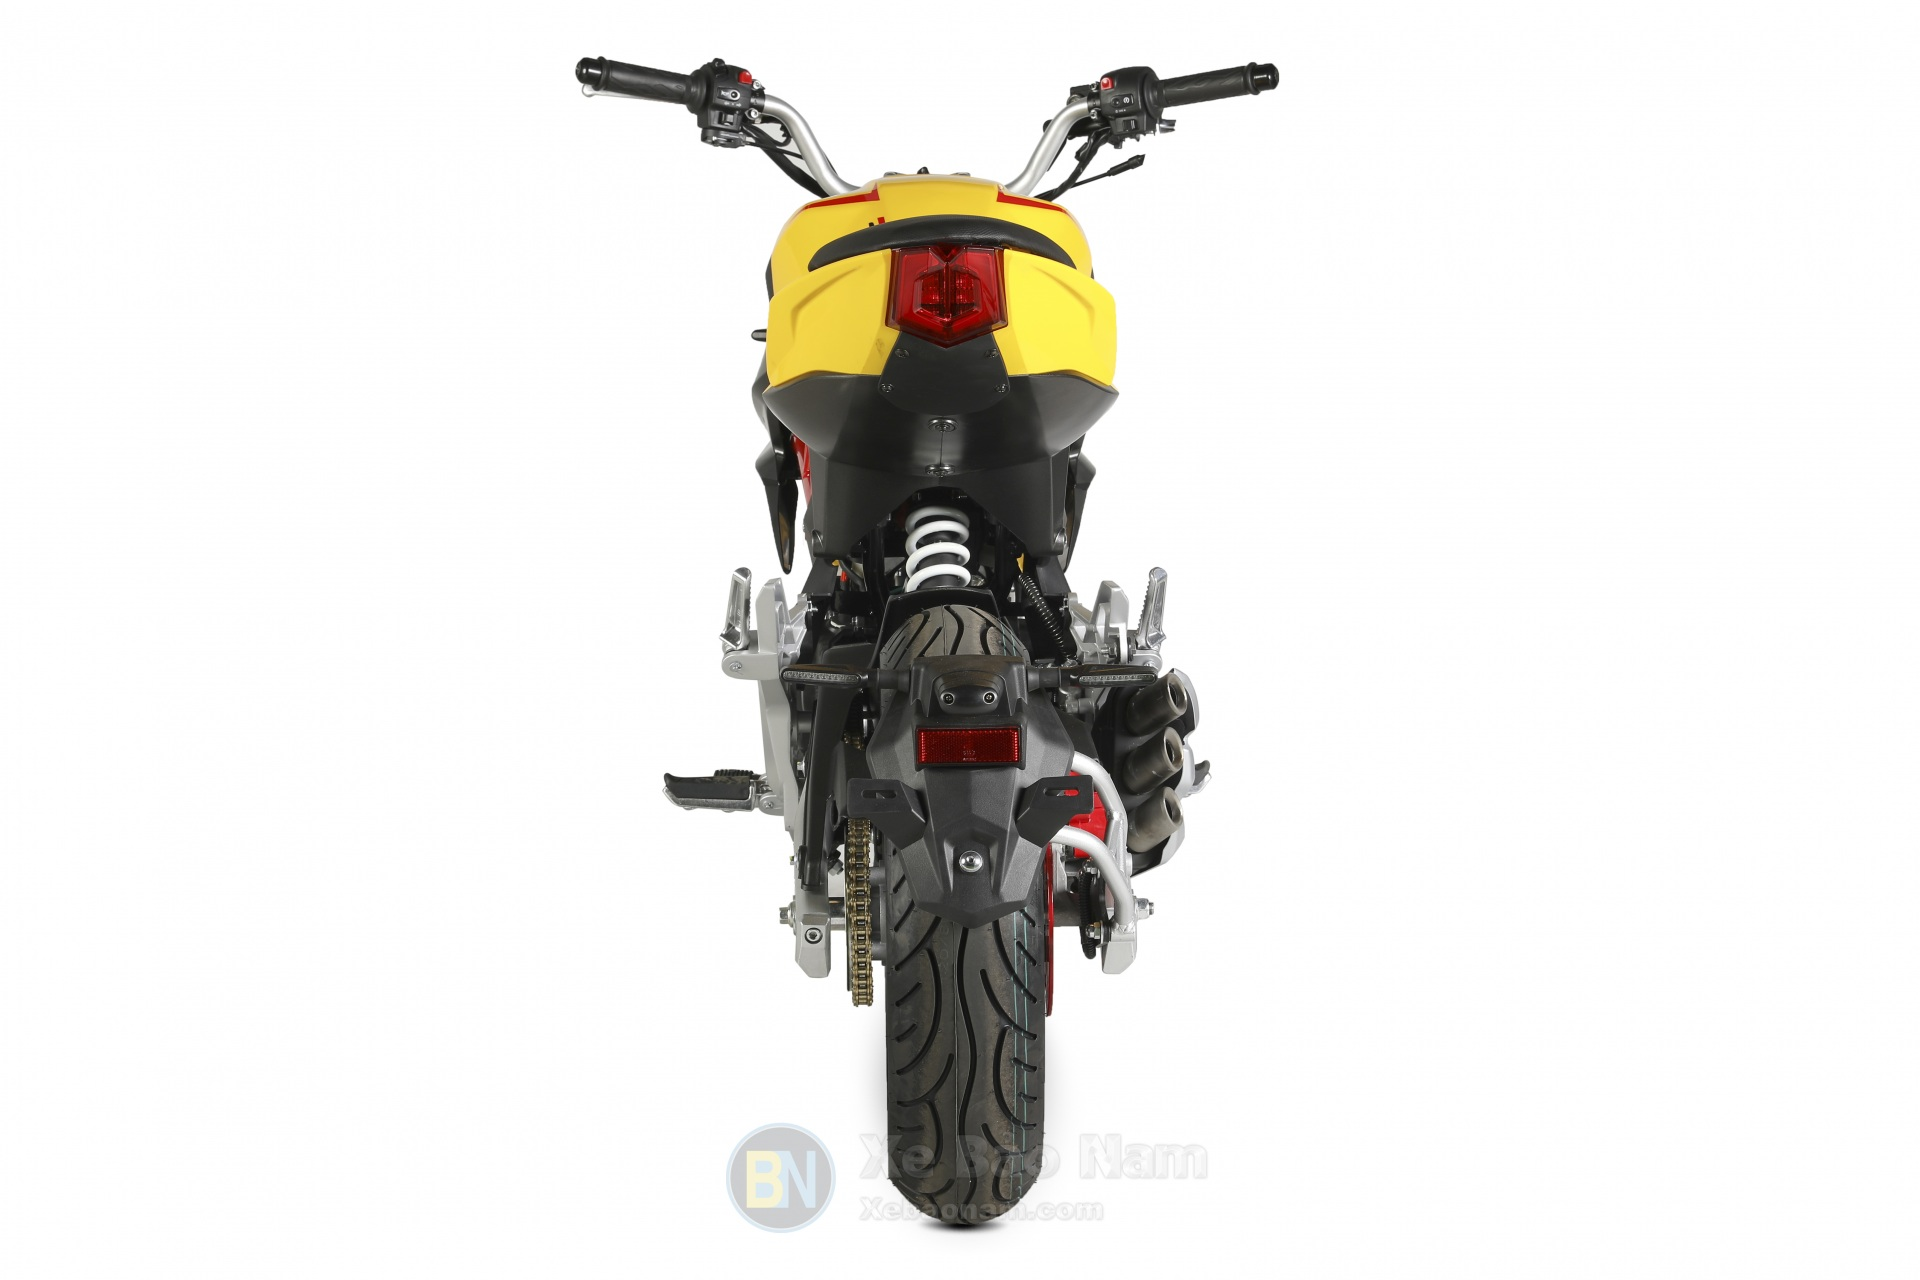 xe-may-mv-agusta-mini-110-new-xebaonam-10